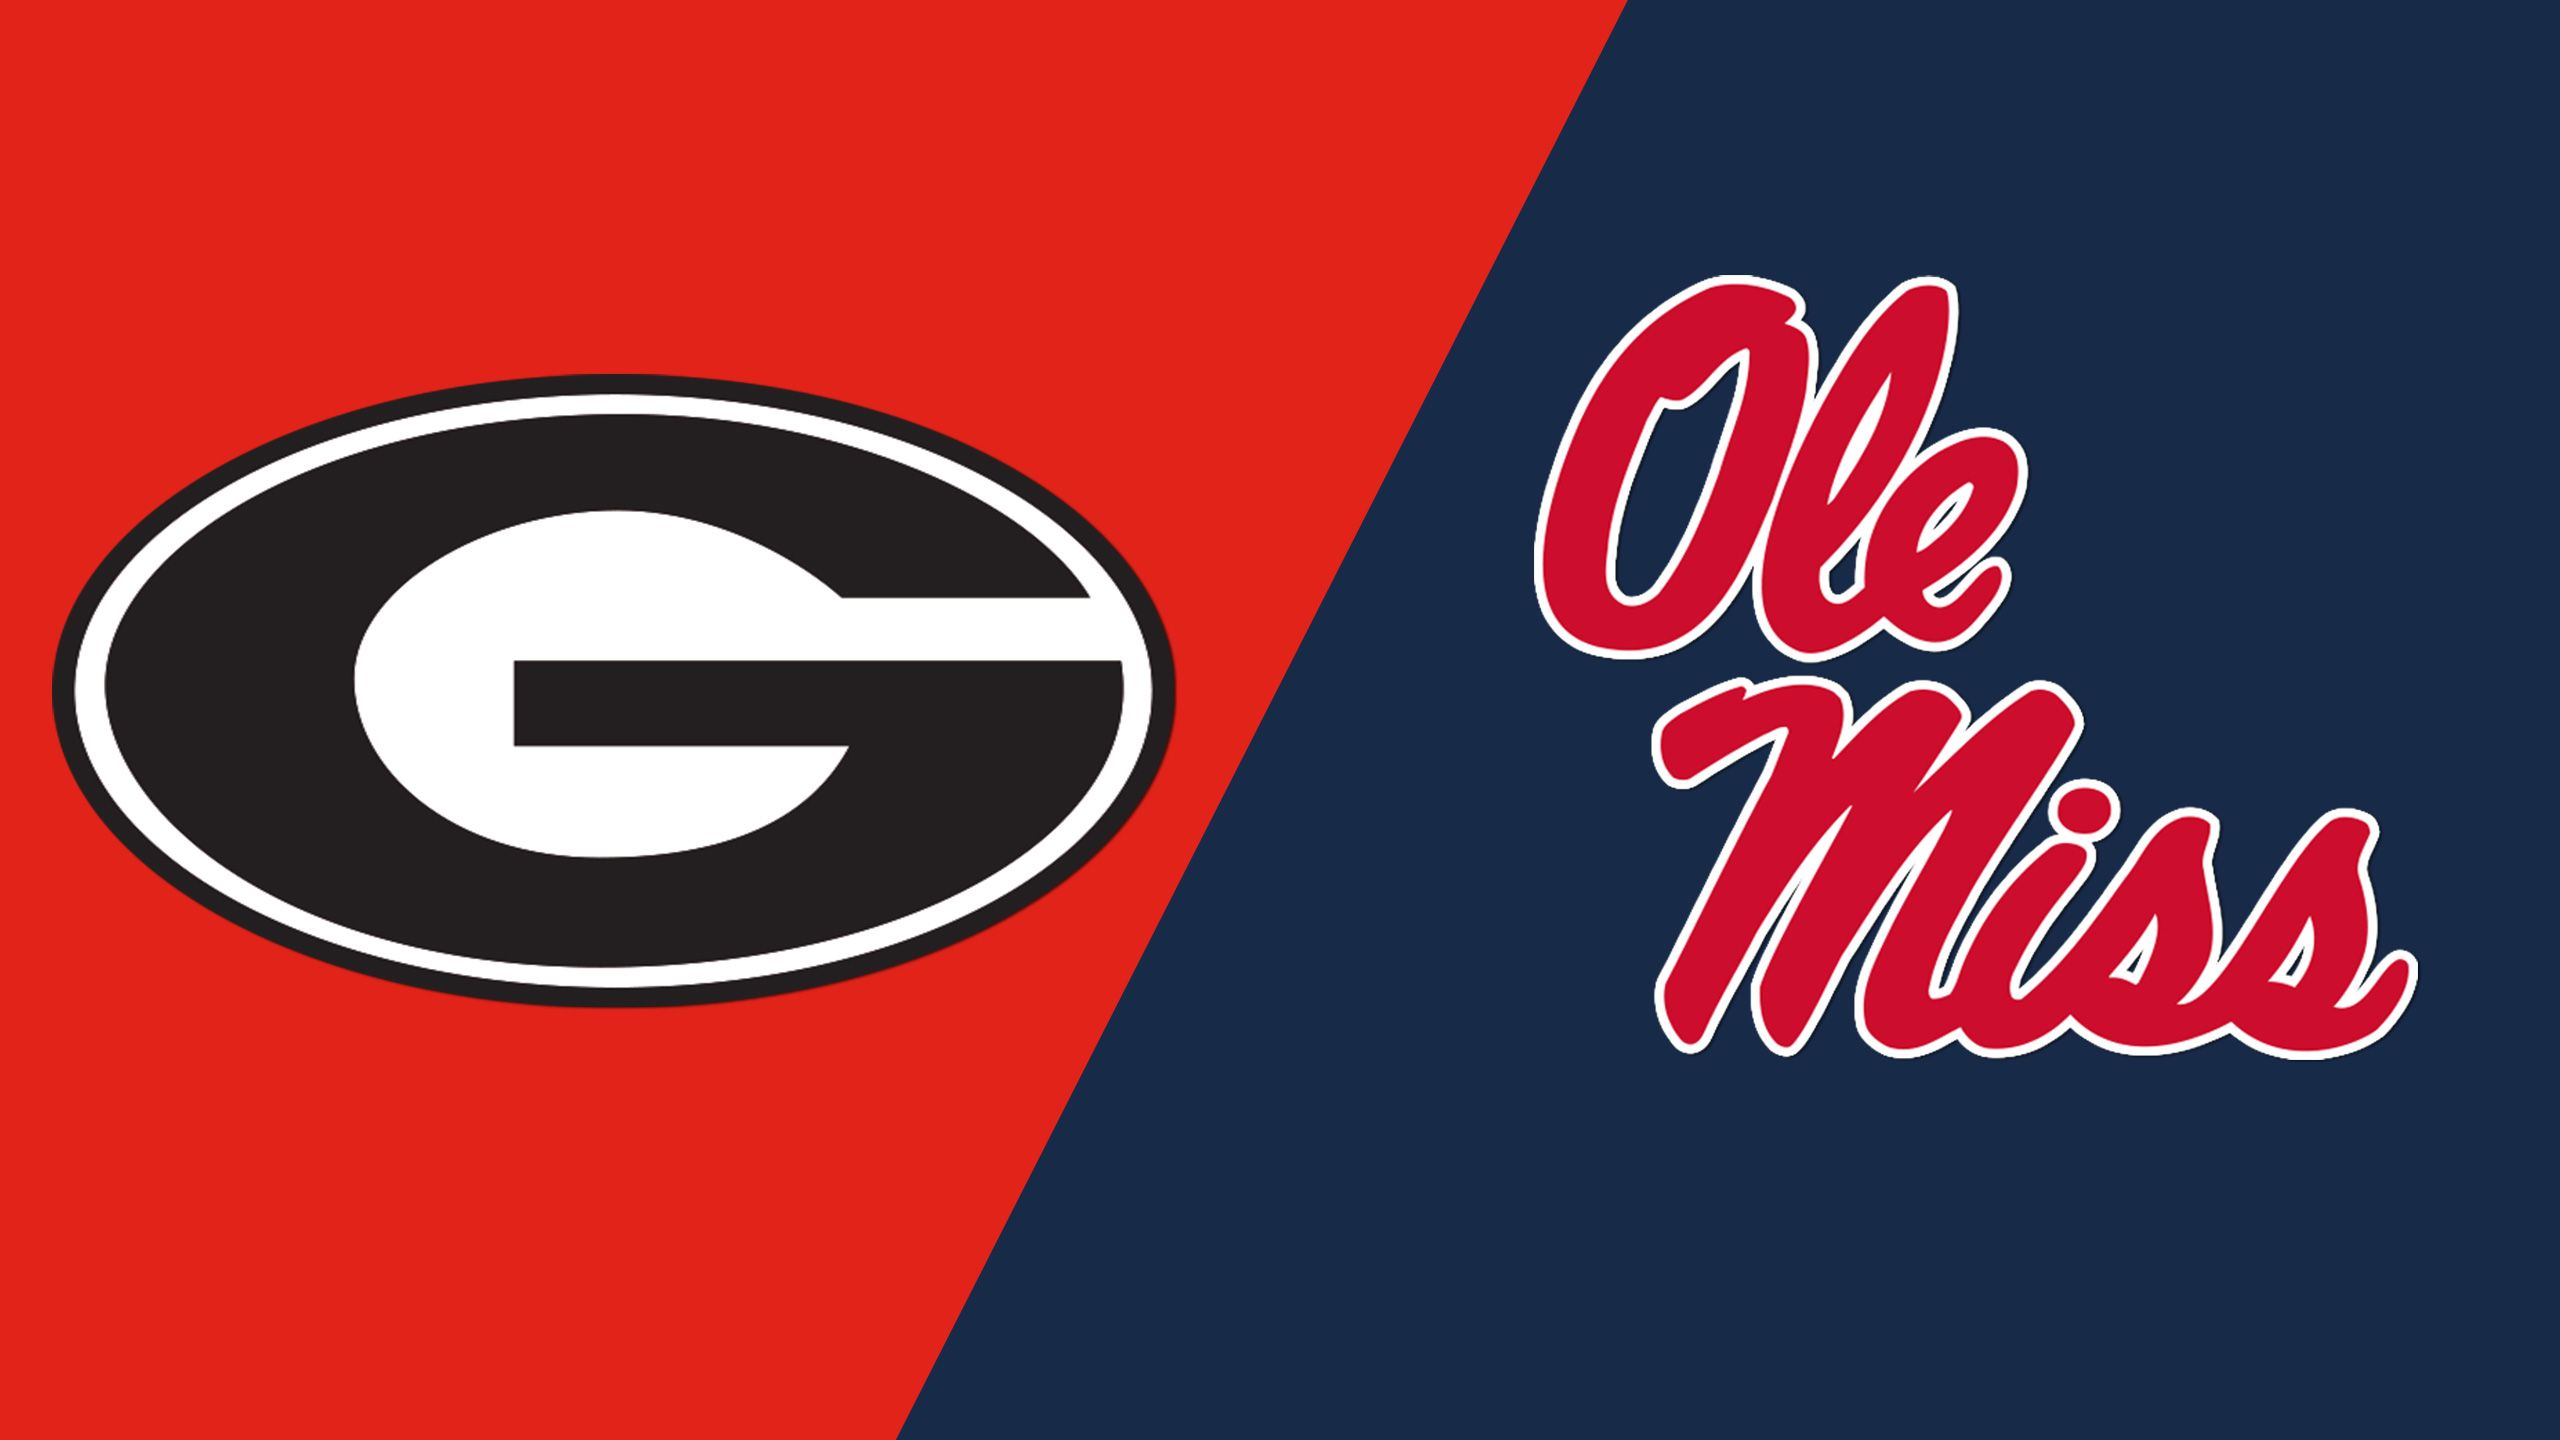 #19 Georgia vs. #7 Ole Miss (Baseball)